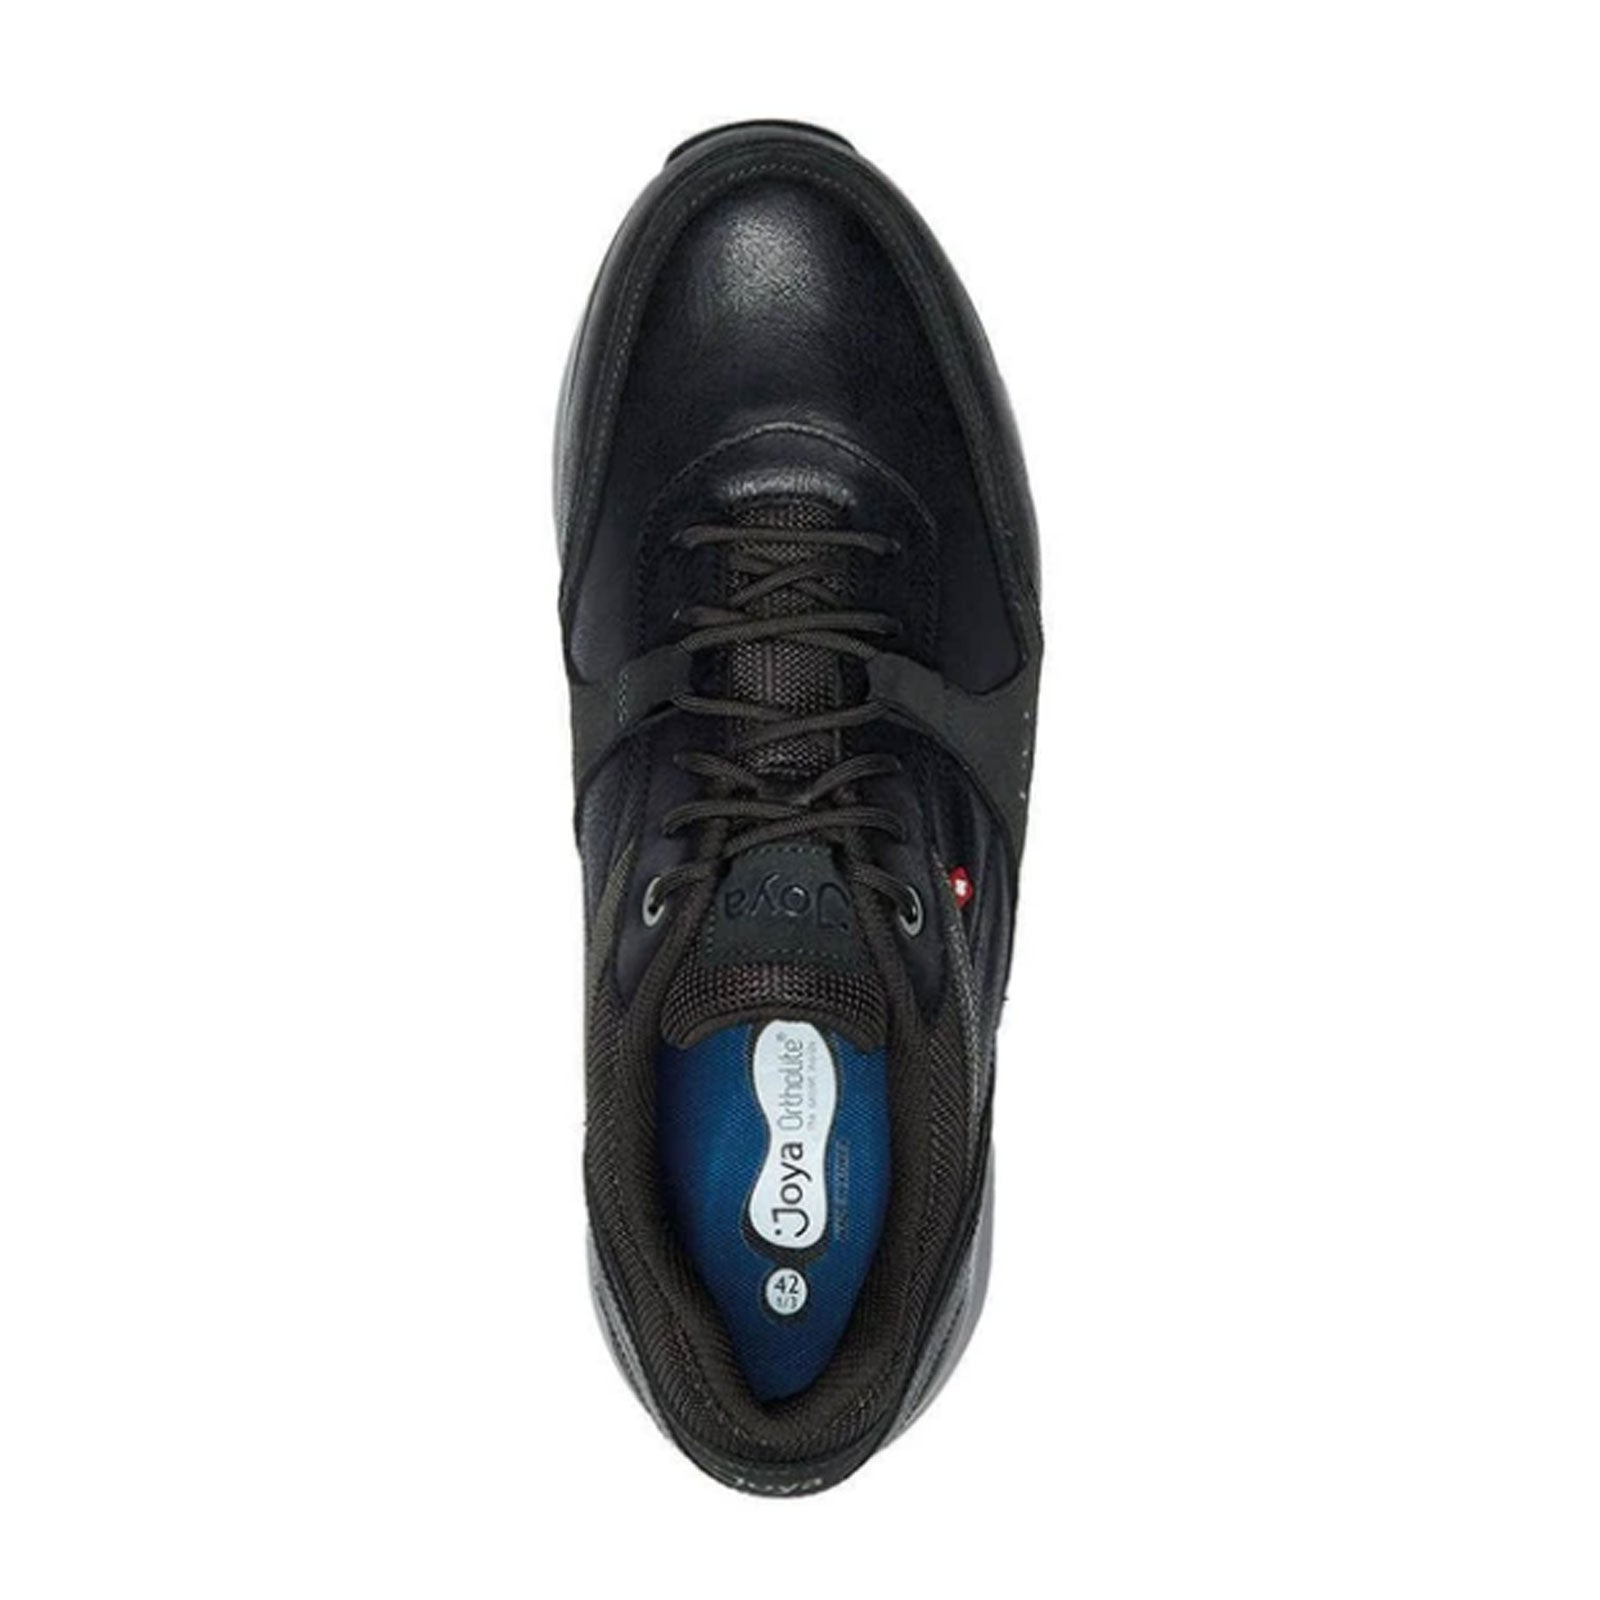 Joya Tony II (Men) - Black Dress/Casual|Sneakers - The Heel Shoe Fitters